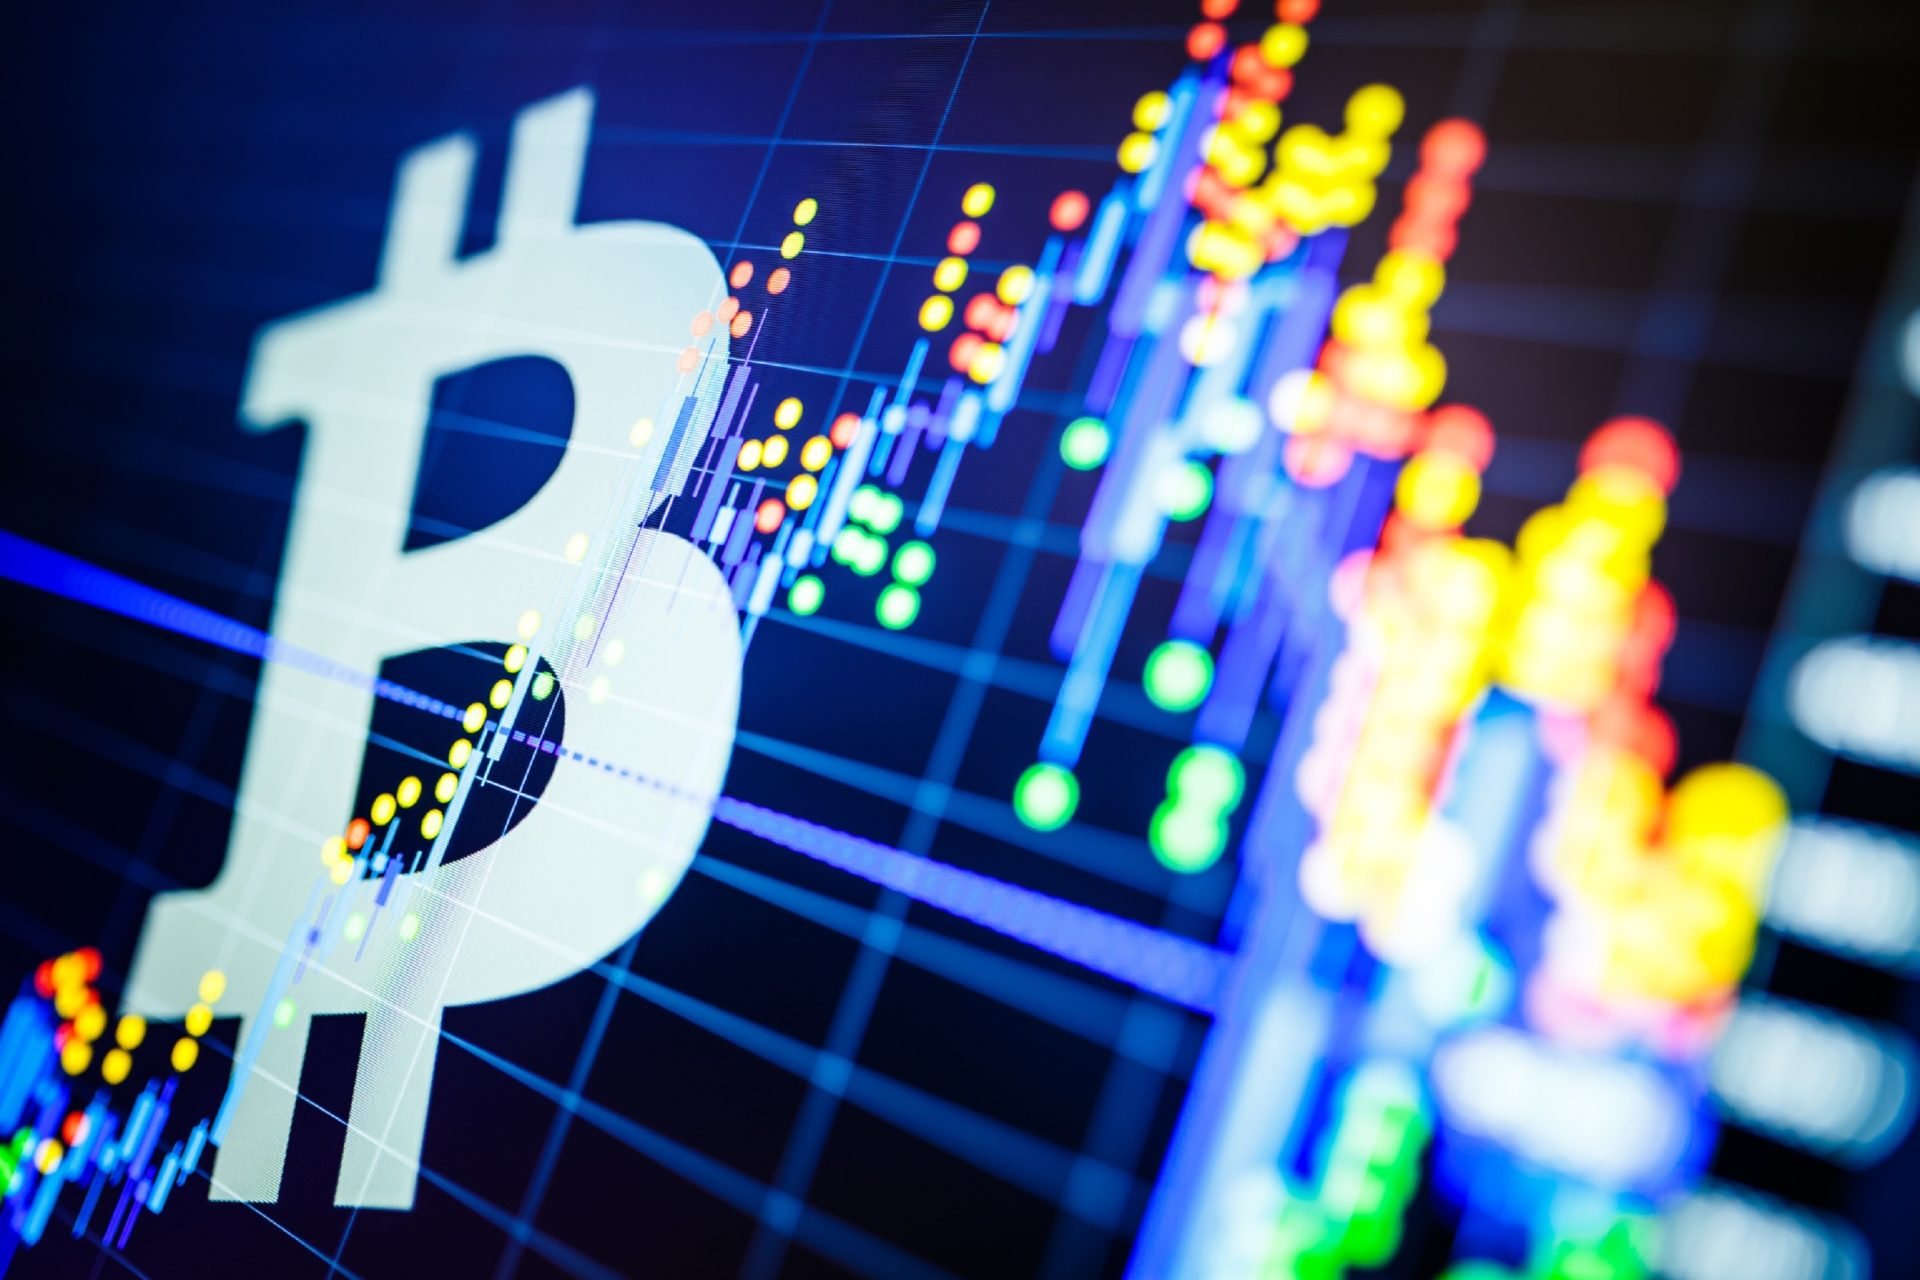 Why Is The Price Of The Bitcoin Cryptocurrency Going Up?